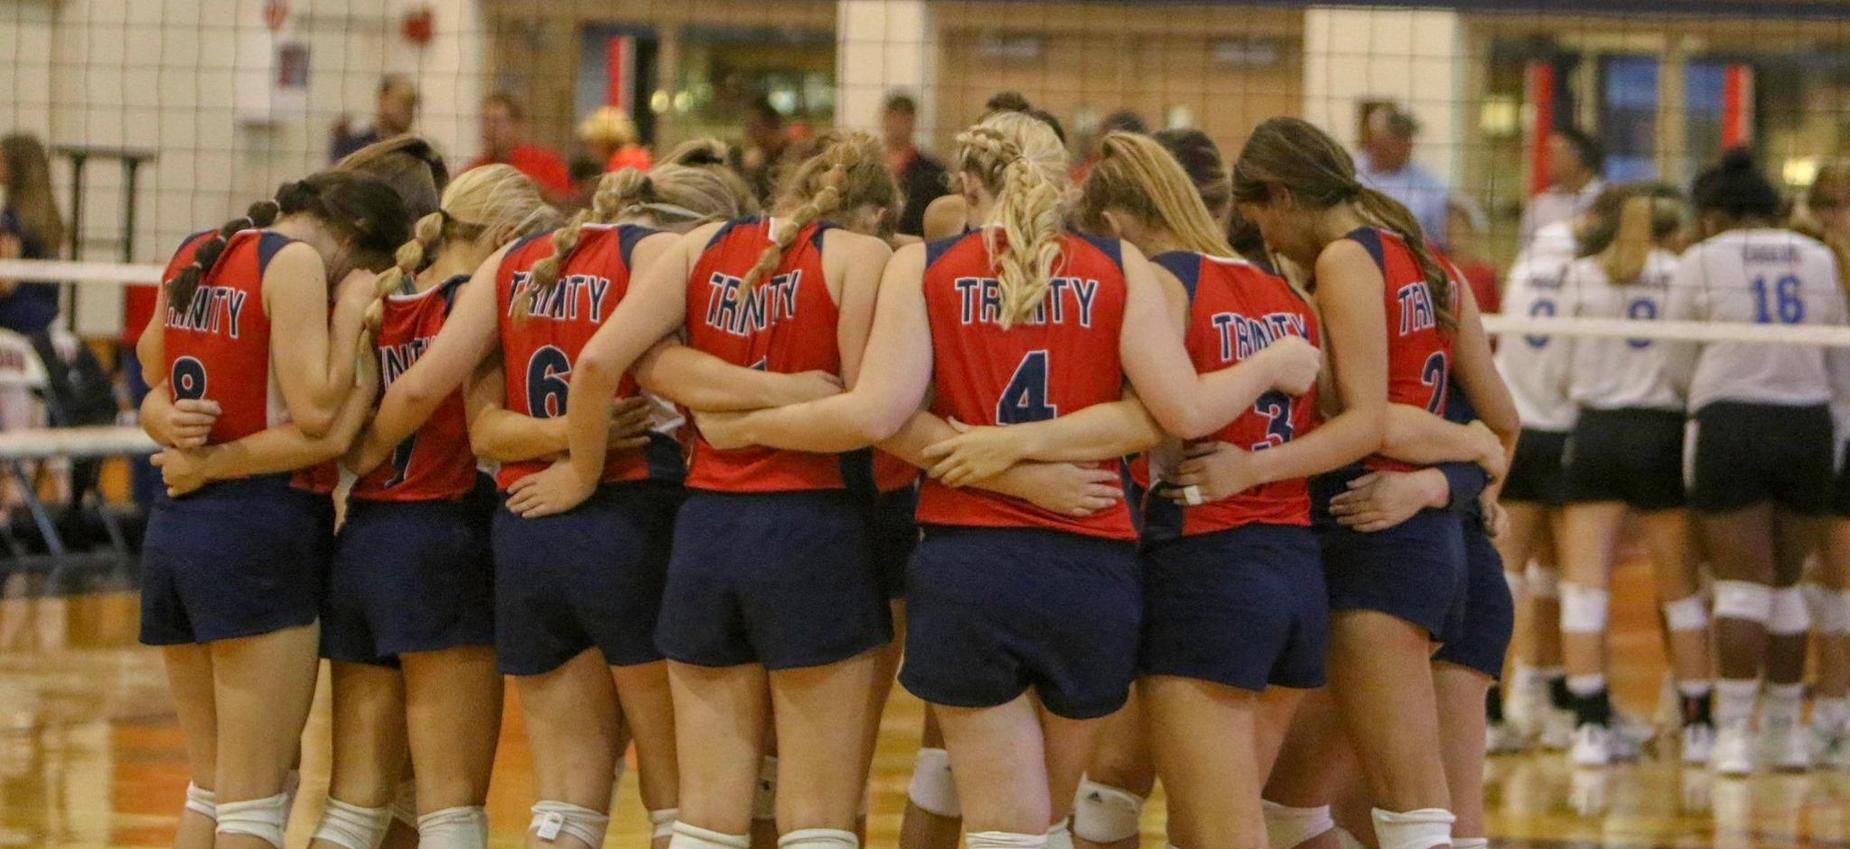 Volleyball team praying before the game.